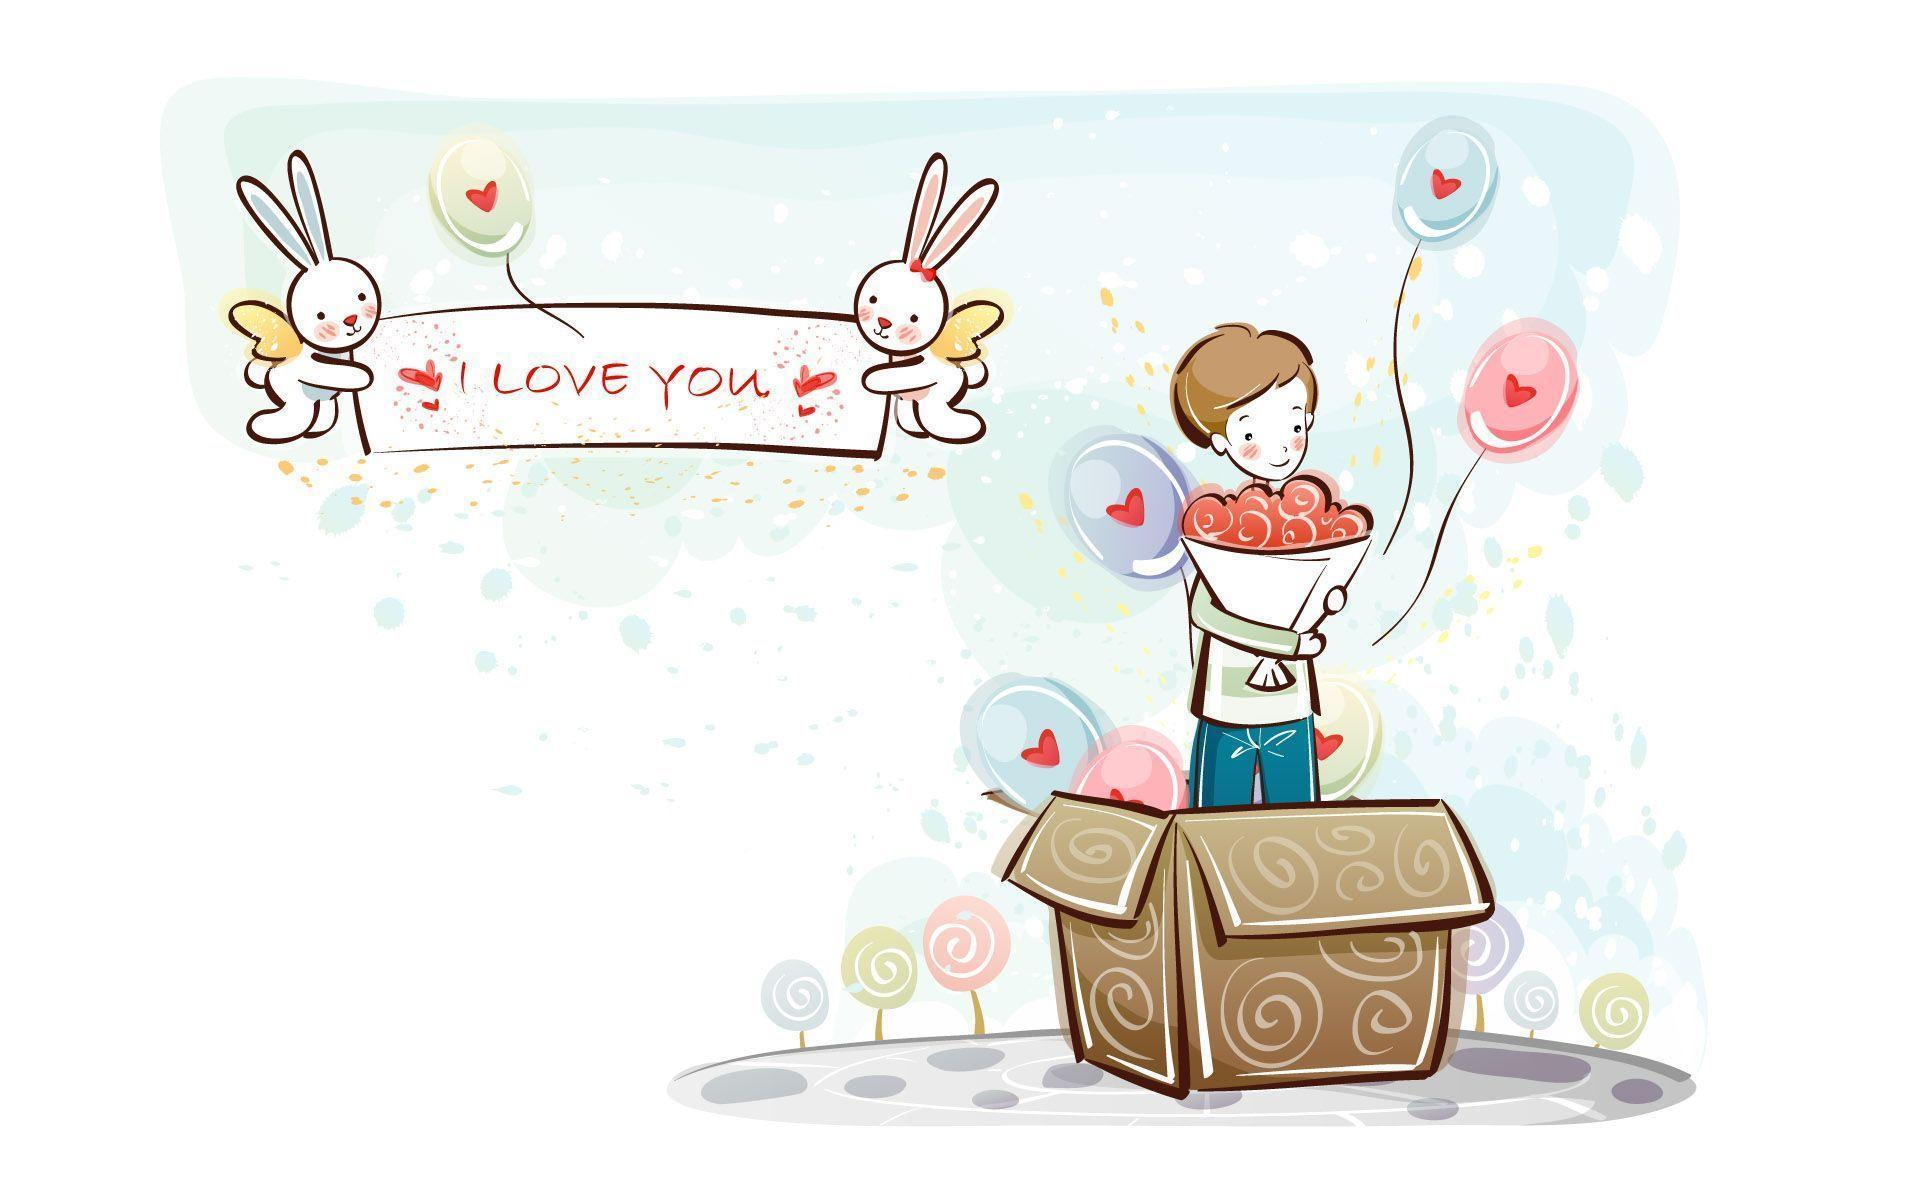 Most Inspiring Love Couple Cartoon HD Wallpaper Download - 5n8Rw6m  Trends_503425.jpg